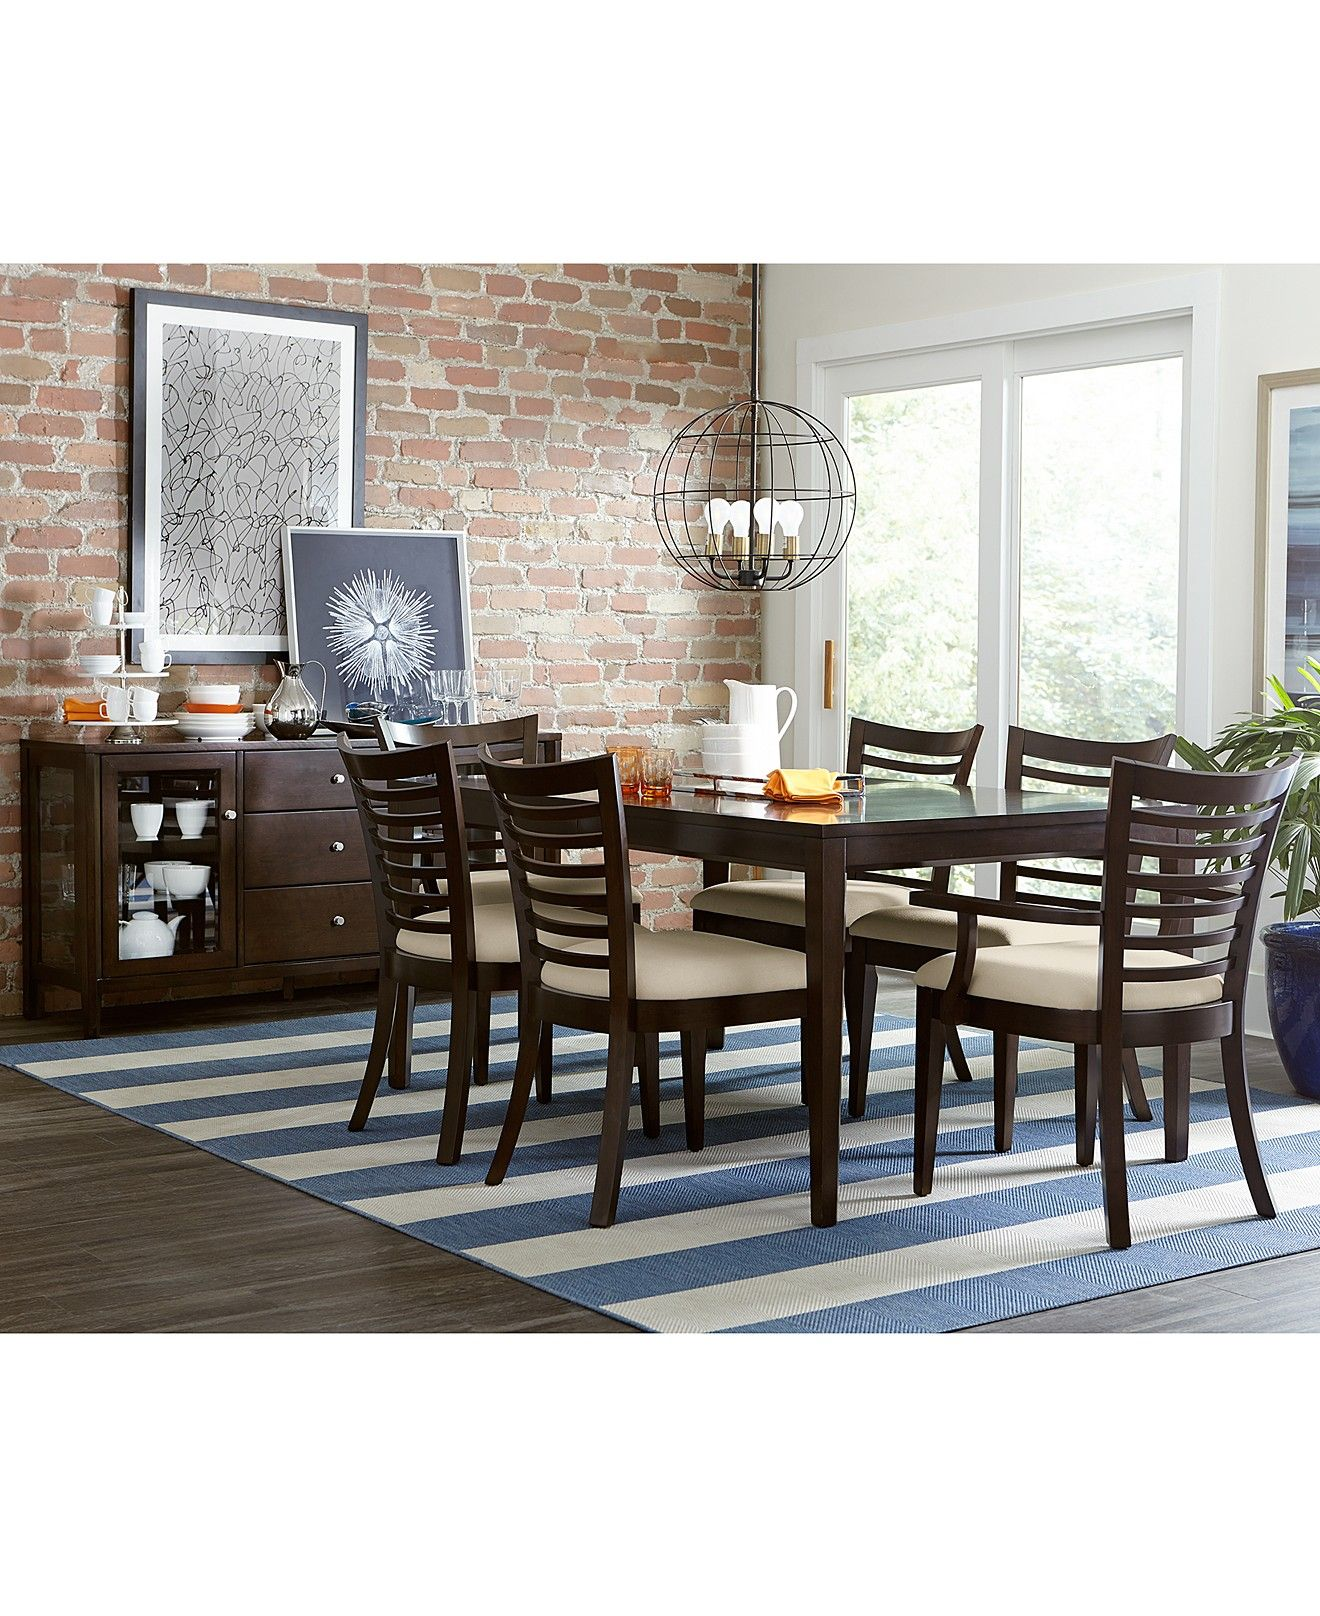 dining room furniture brisbane | Brisbane Dining Furniture Collection - Dining Room ...